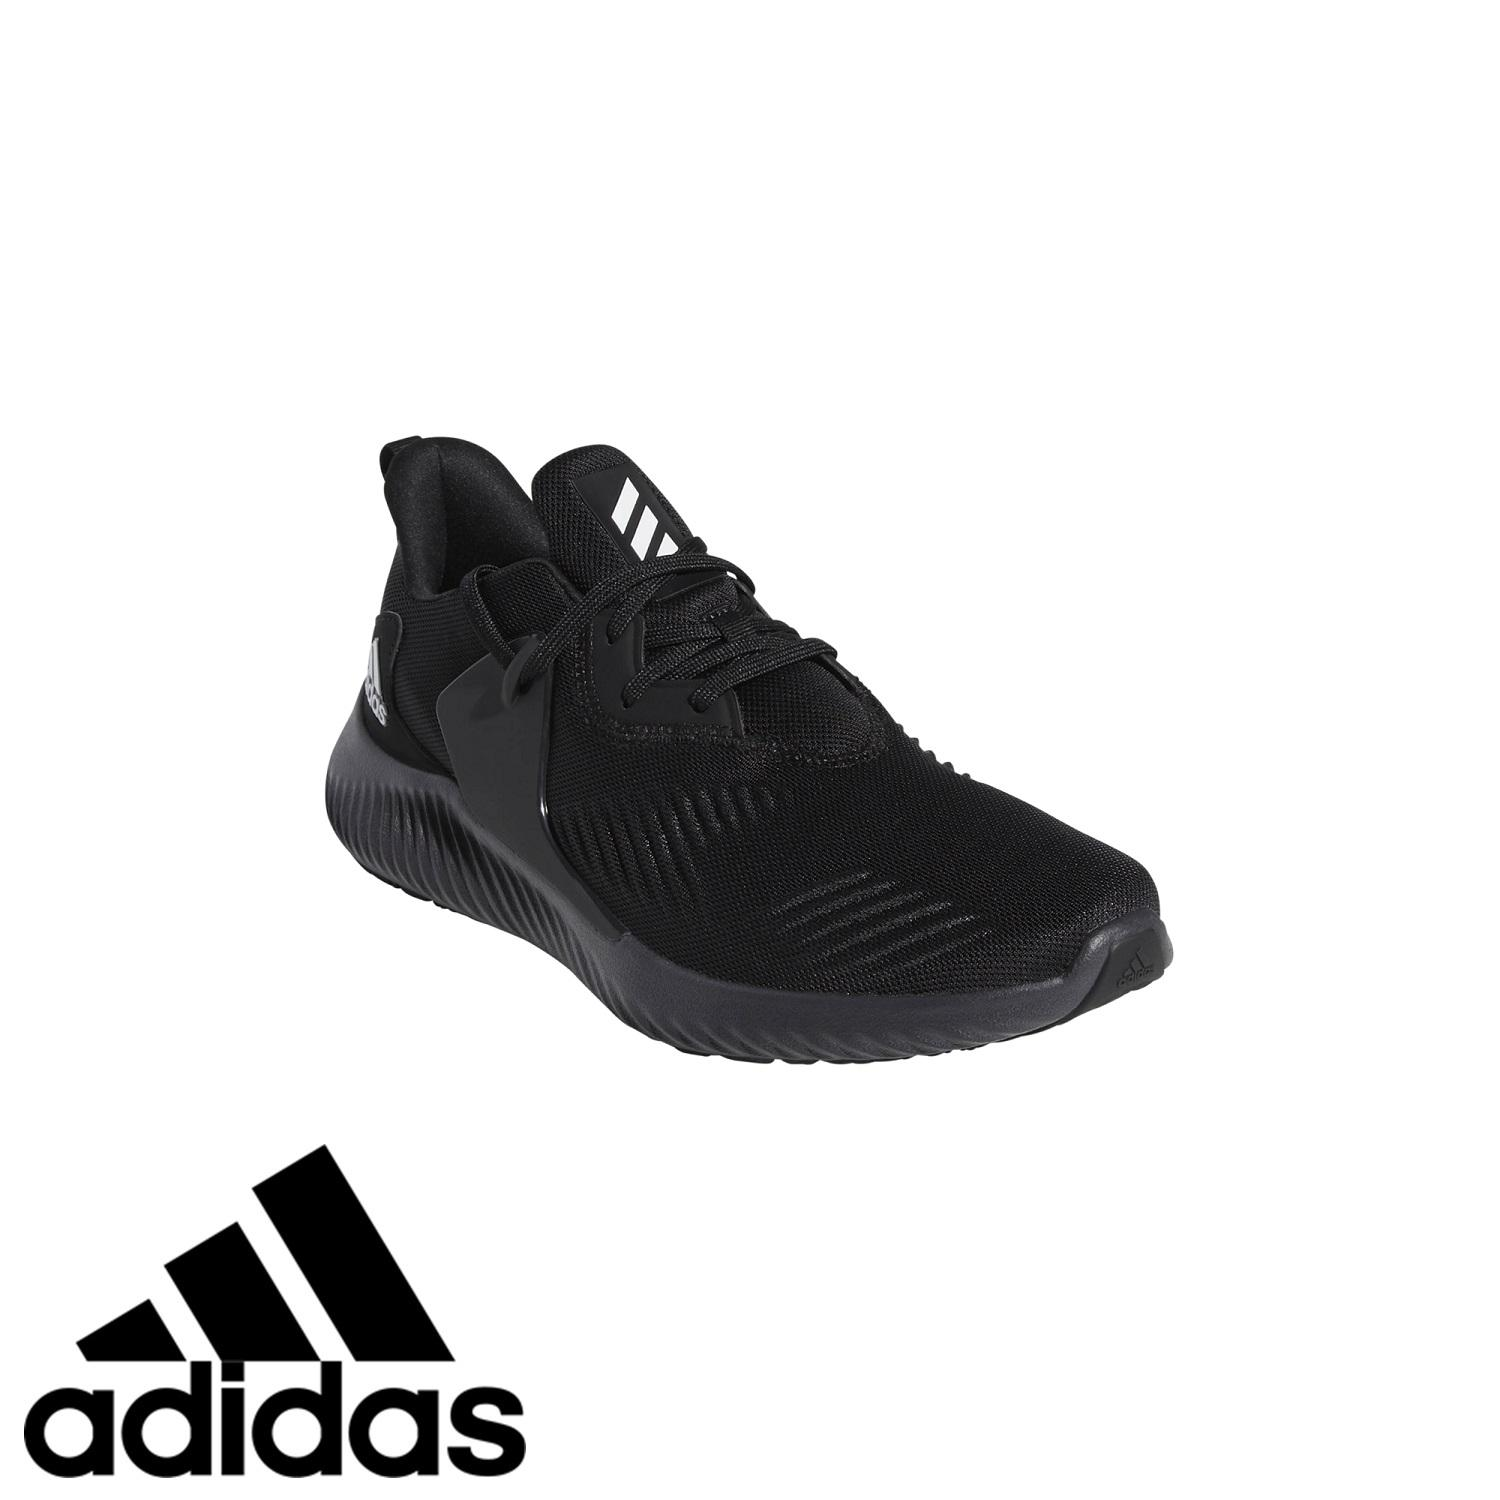 c7bc895ccb158 Adidas Sports Shoes Philippines - Adidas Sports Clothing for sale ...